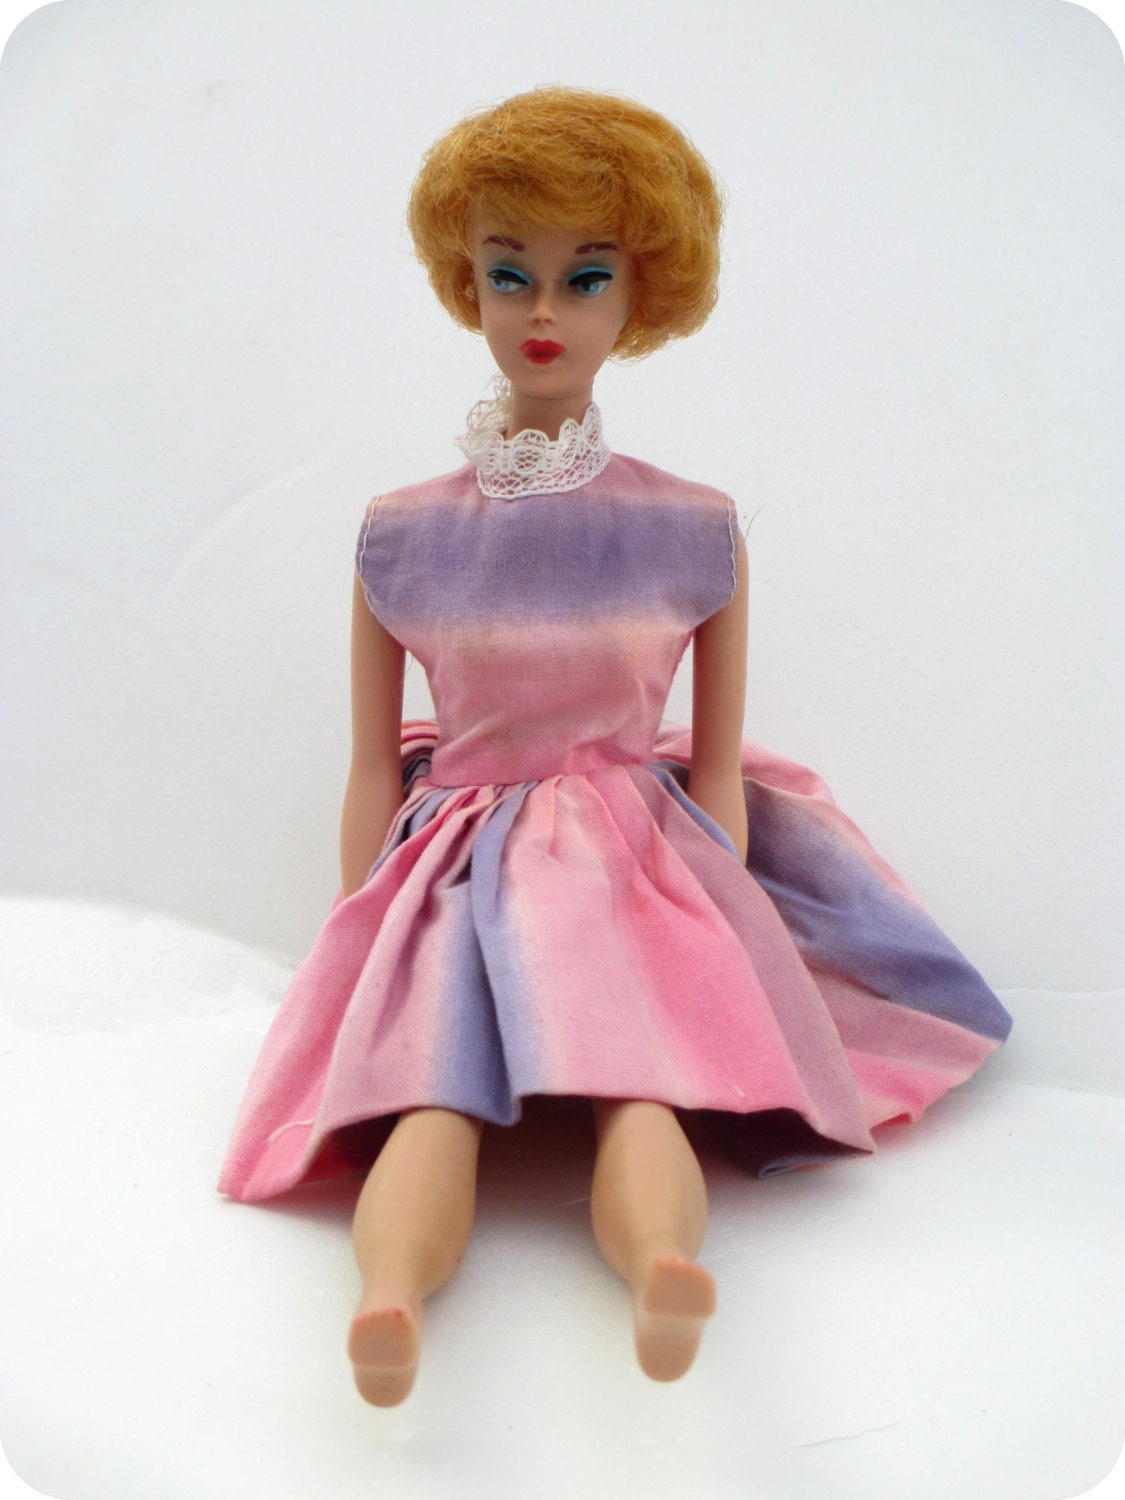 Vintage Barbie Doll For Sale 85